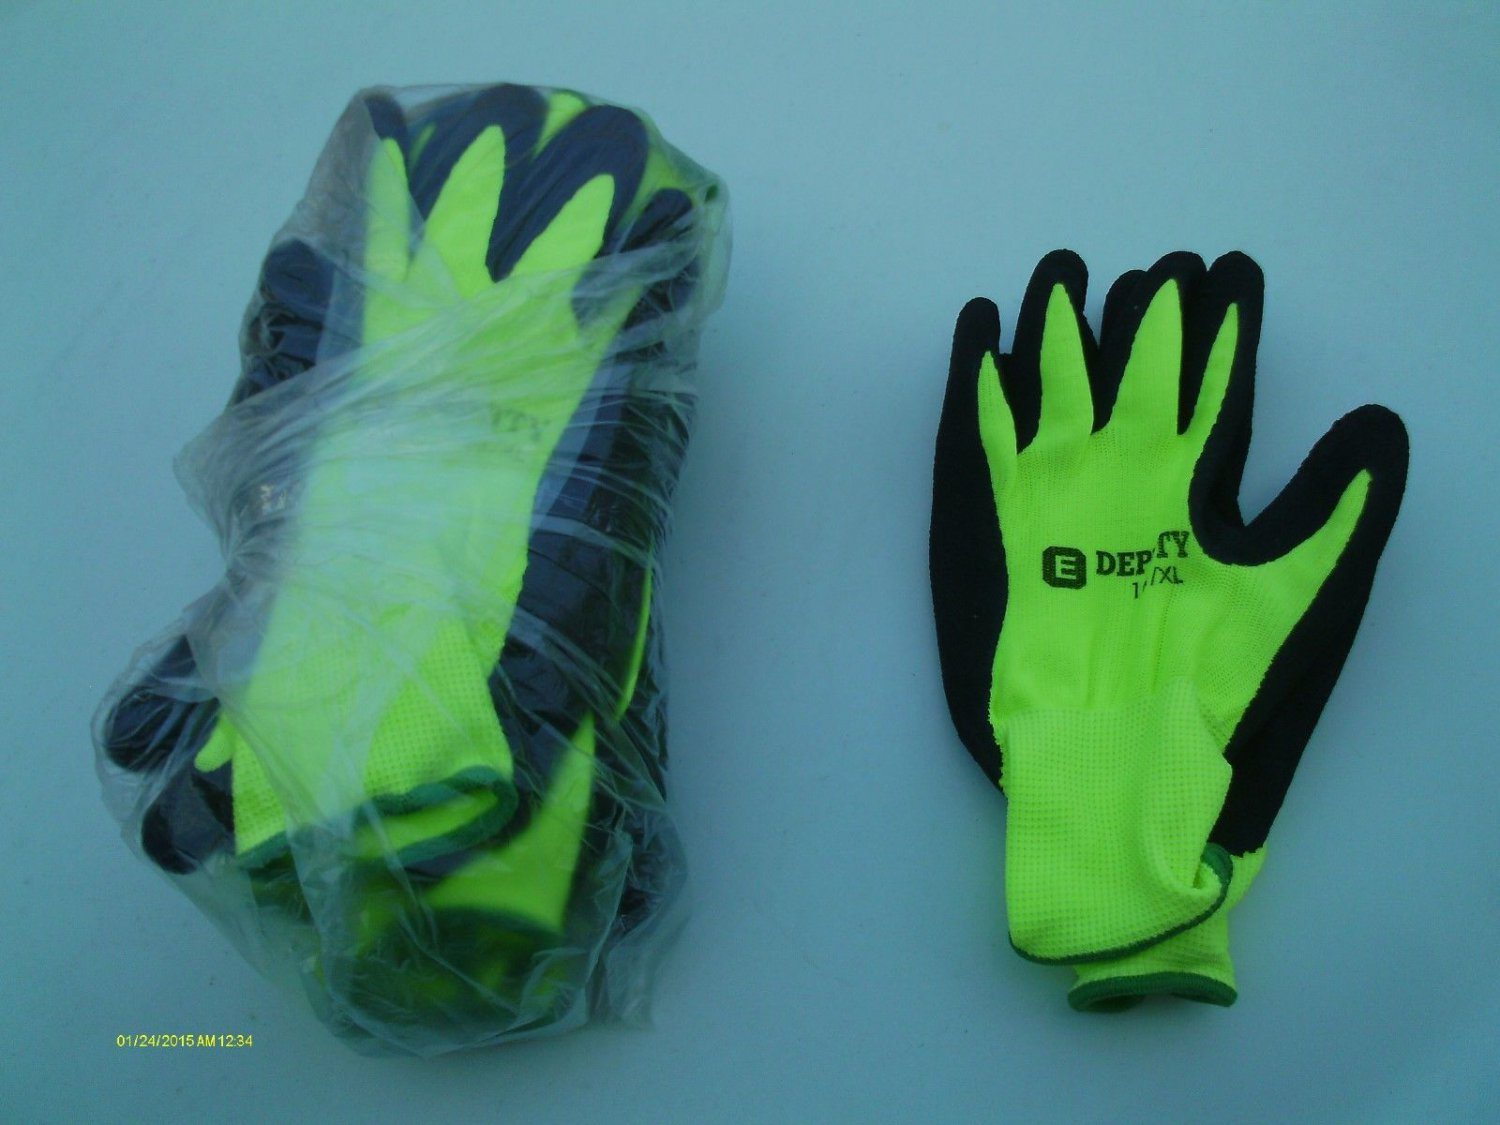 8 PRS HI-VIS LATEX COATED WORK GLOVES GENERAL PURPOSE E-DEPUTY XL #161